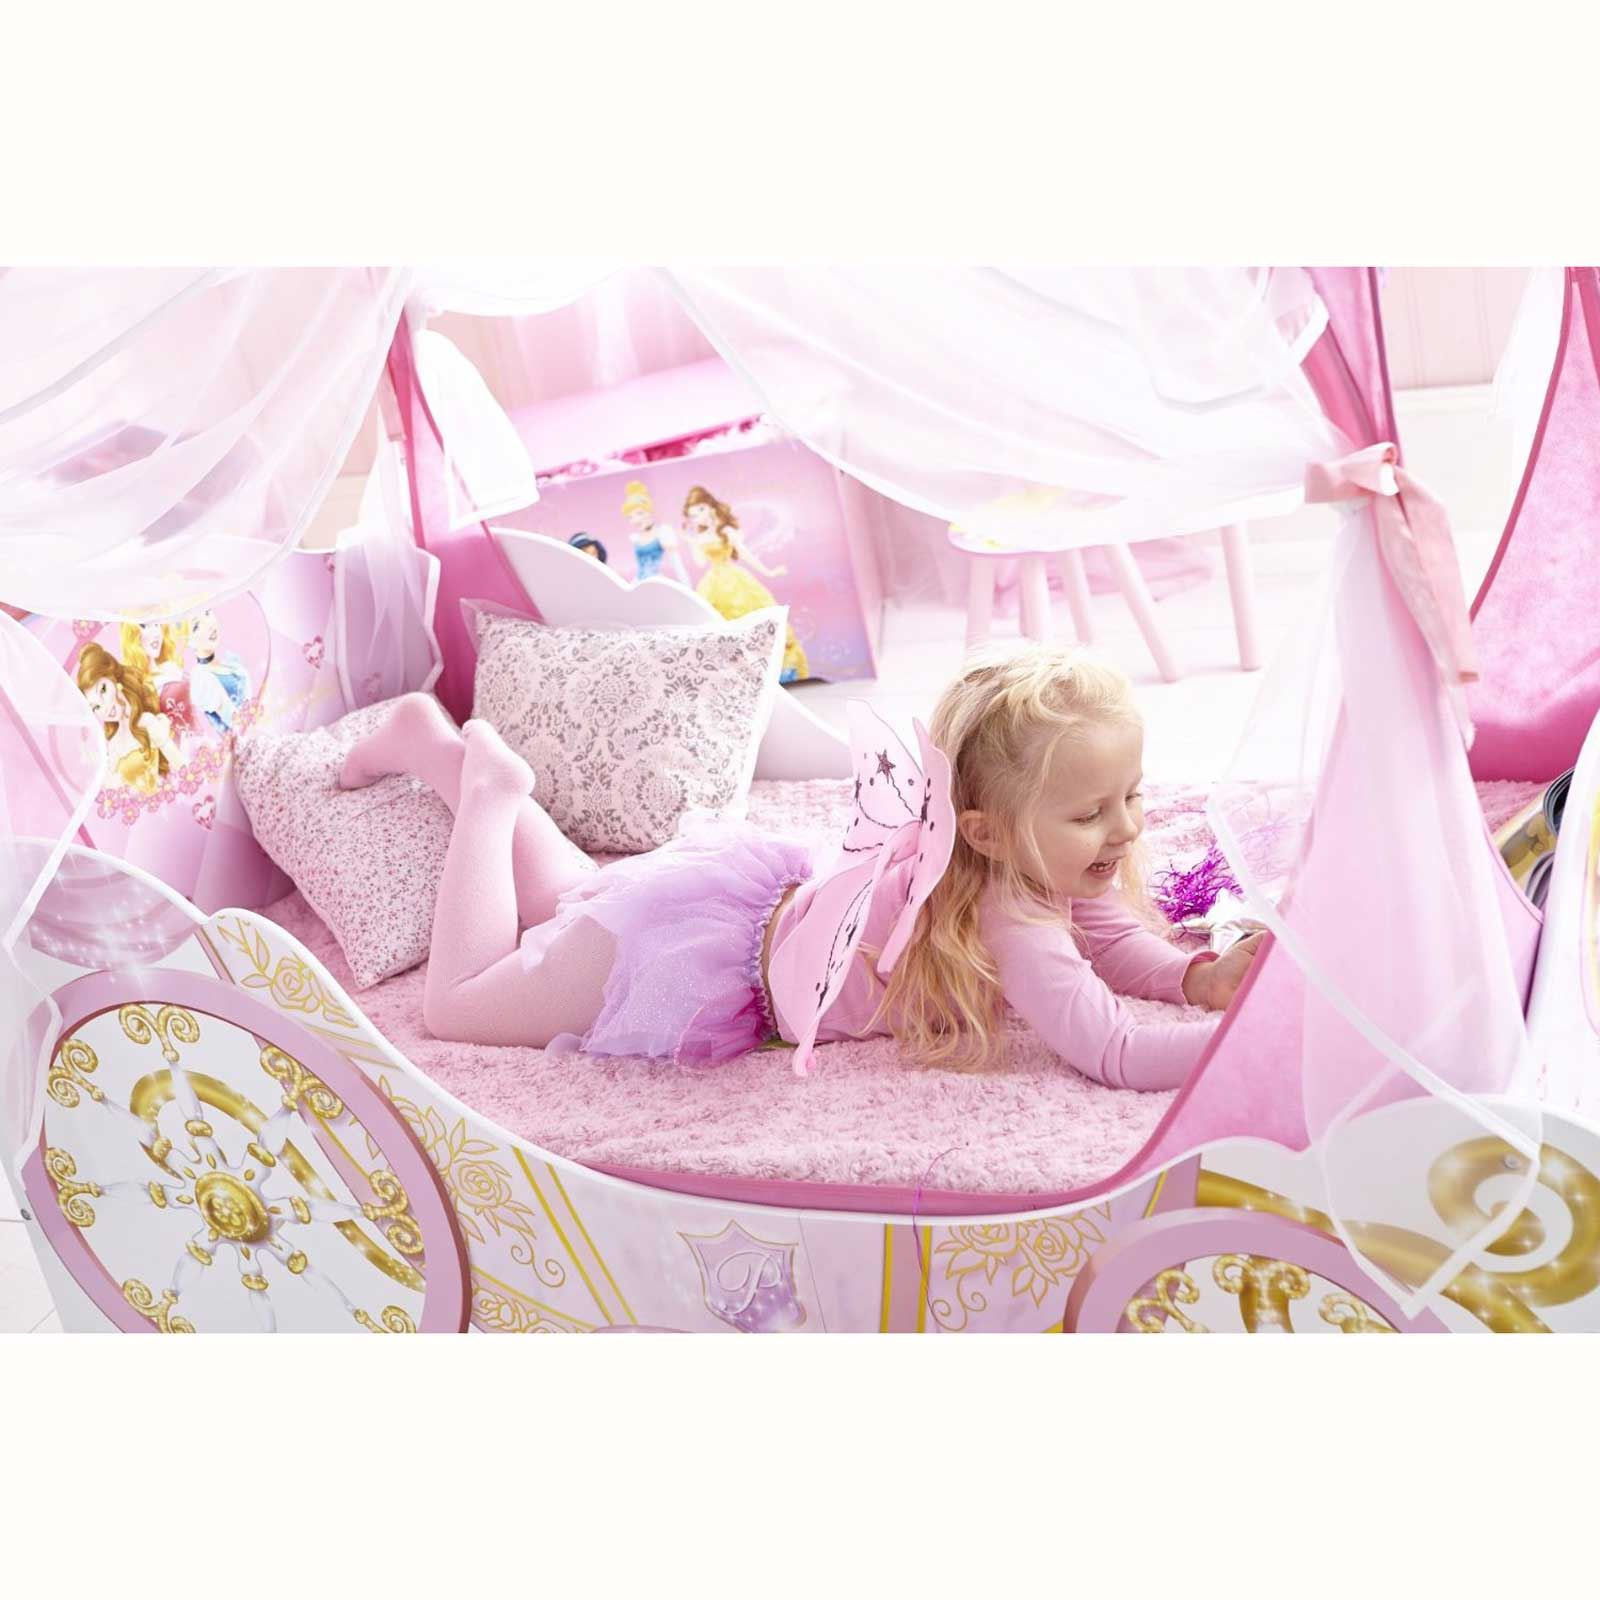 disney kleinkind bett prinzessin kutsche neue matratze schlafzimmer ebay. Black Bedroom Furniture Sets. Home Design Ideas